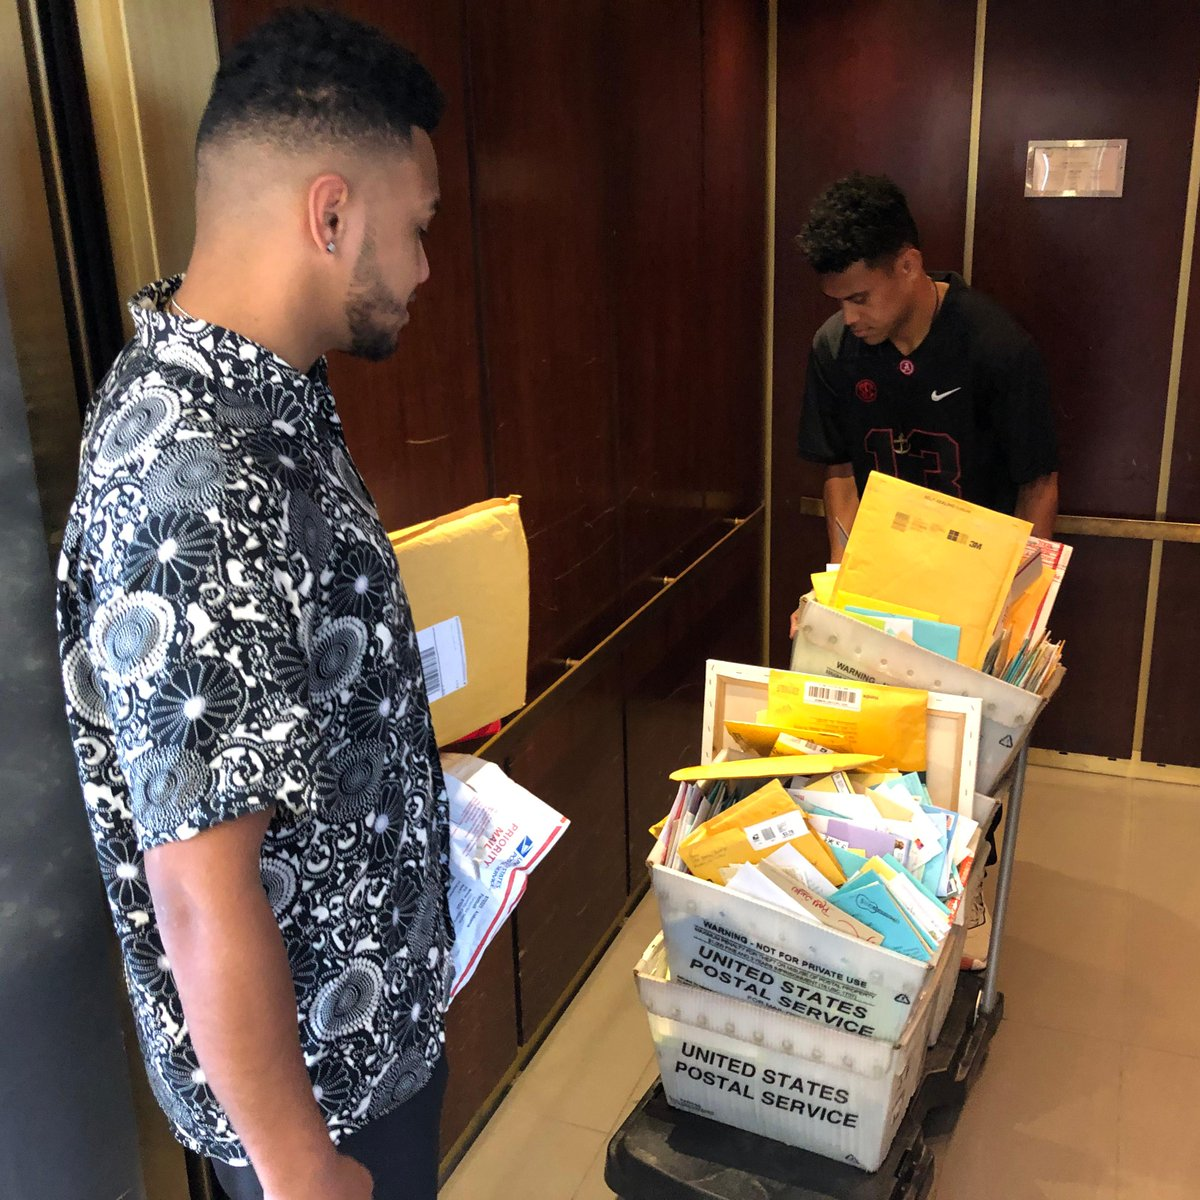 This is all fan mail for @Tuaamann at the @AlabamaFTBL facility 😳